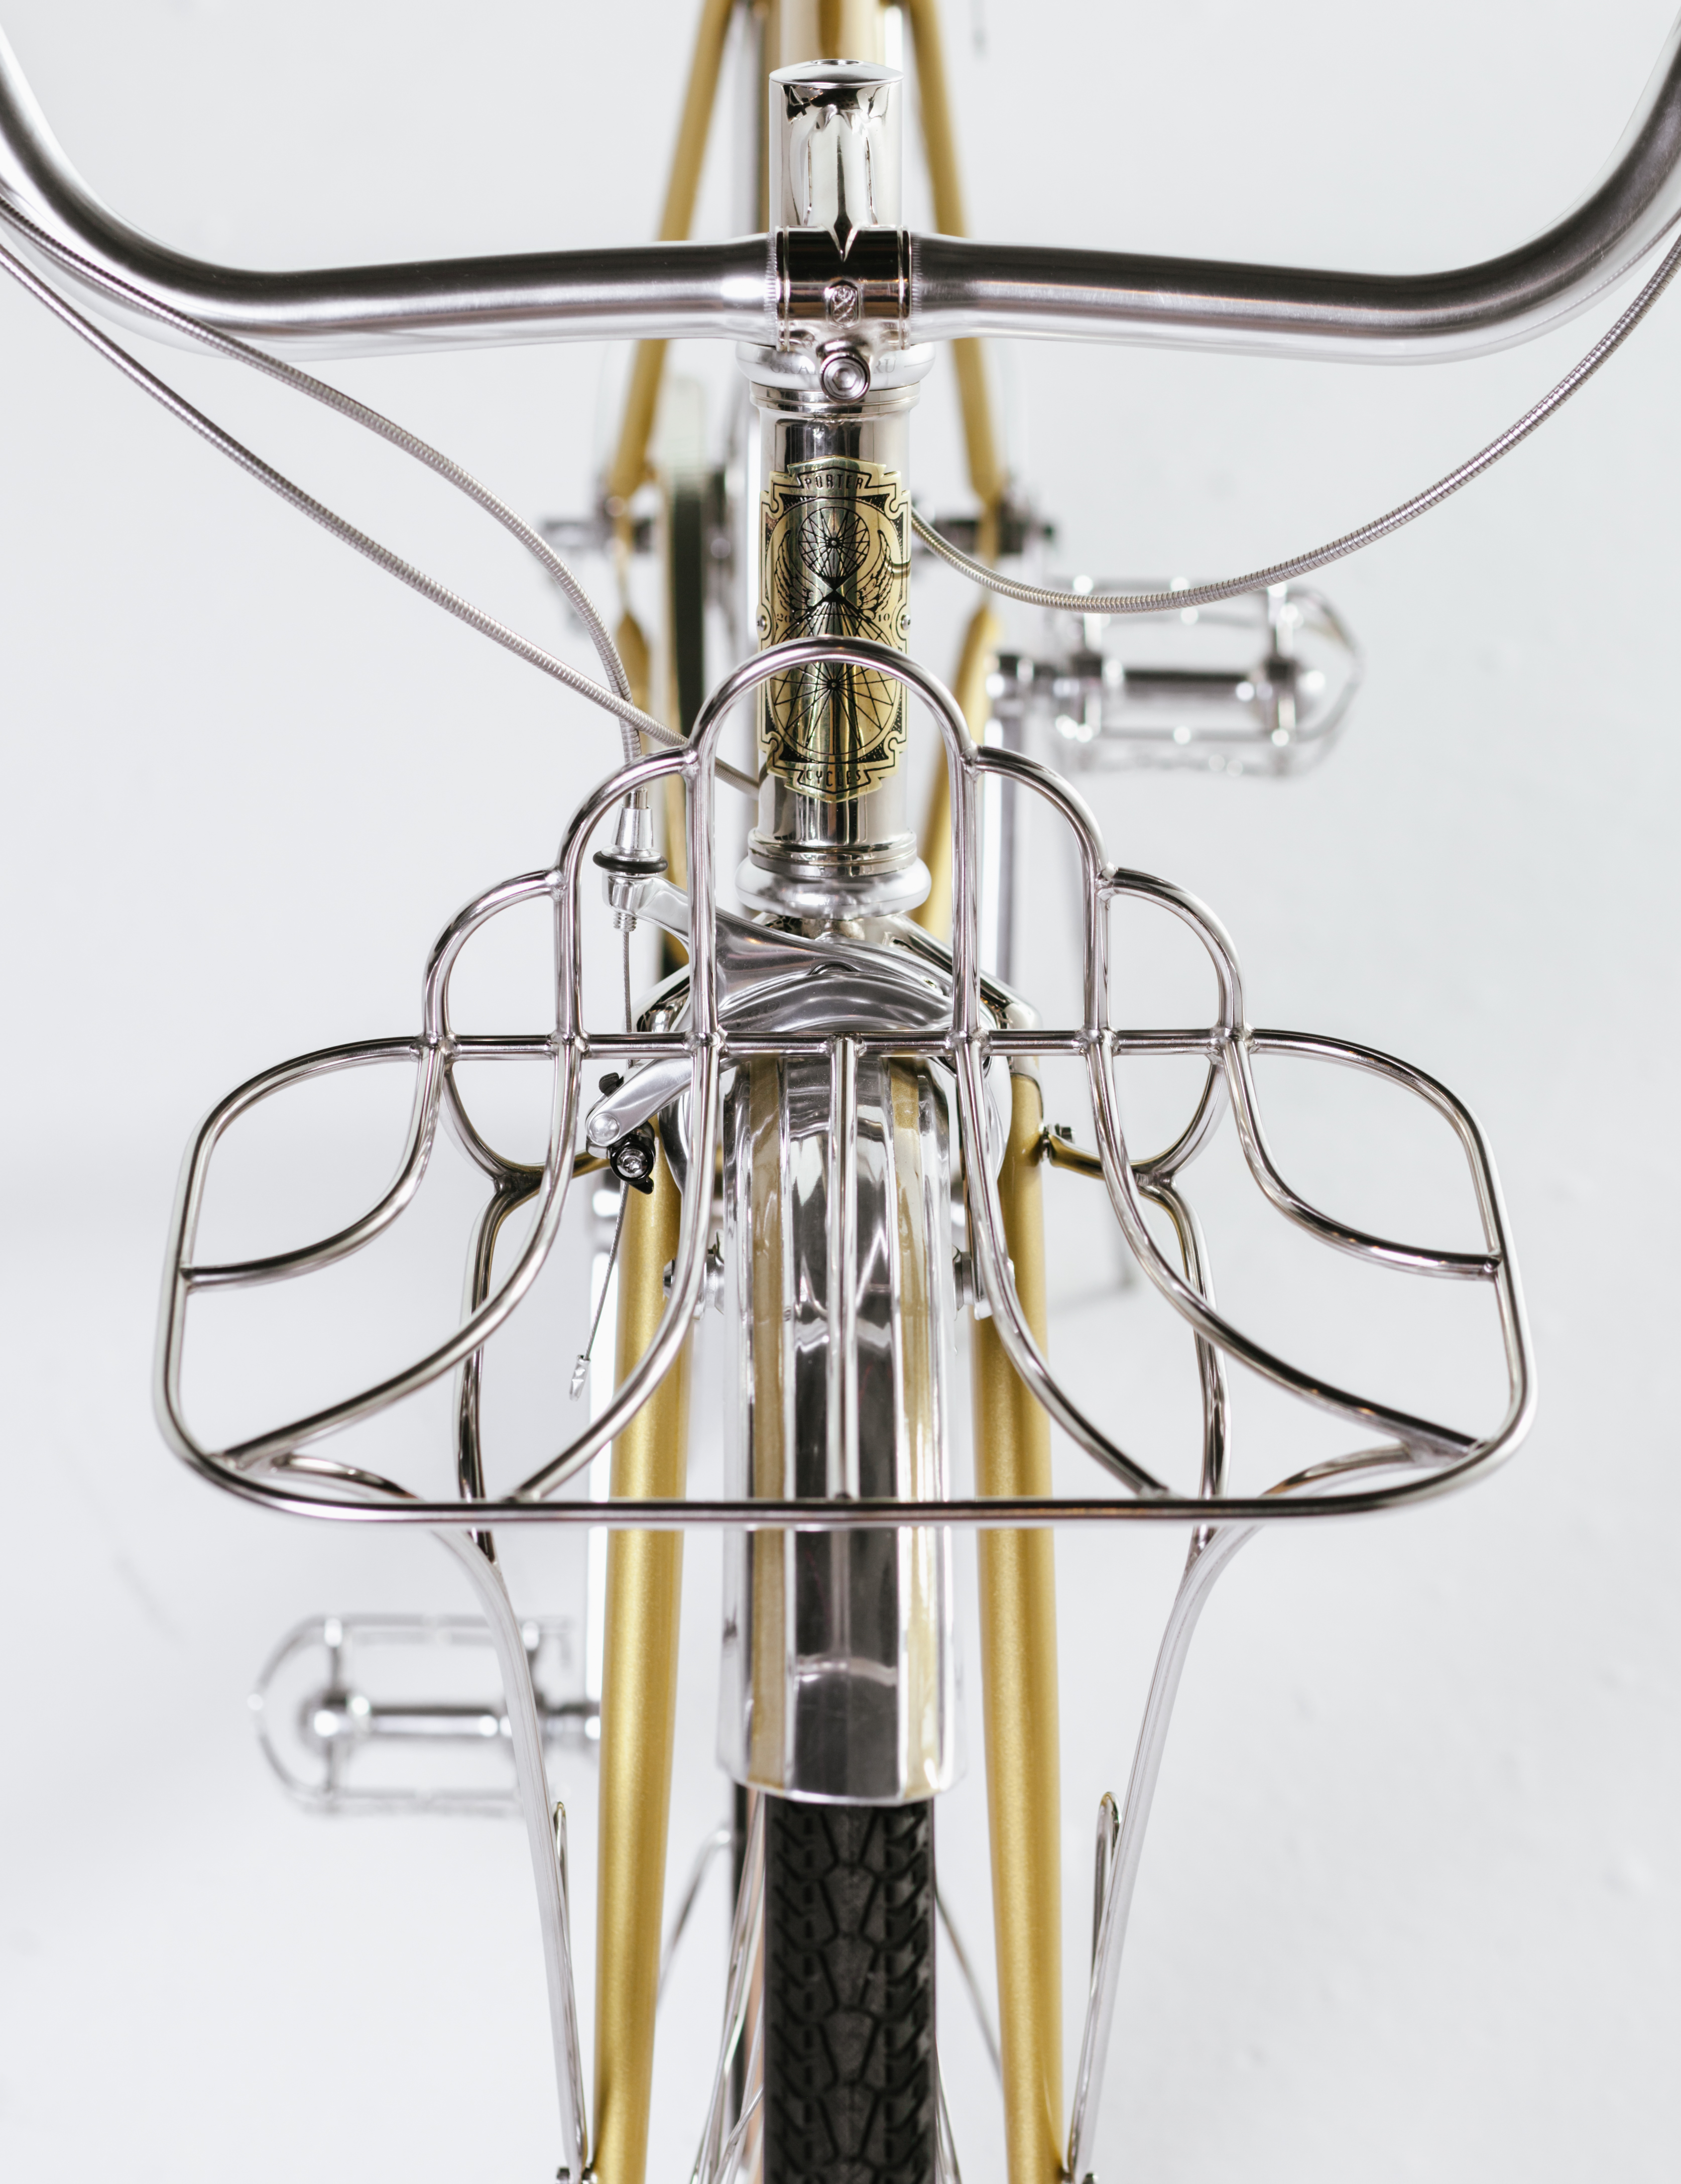 art deco, winged victory, artisan, art bike, bike, bicycle, art